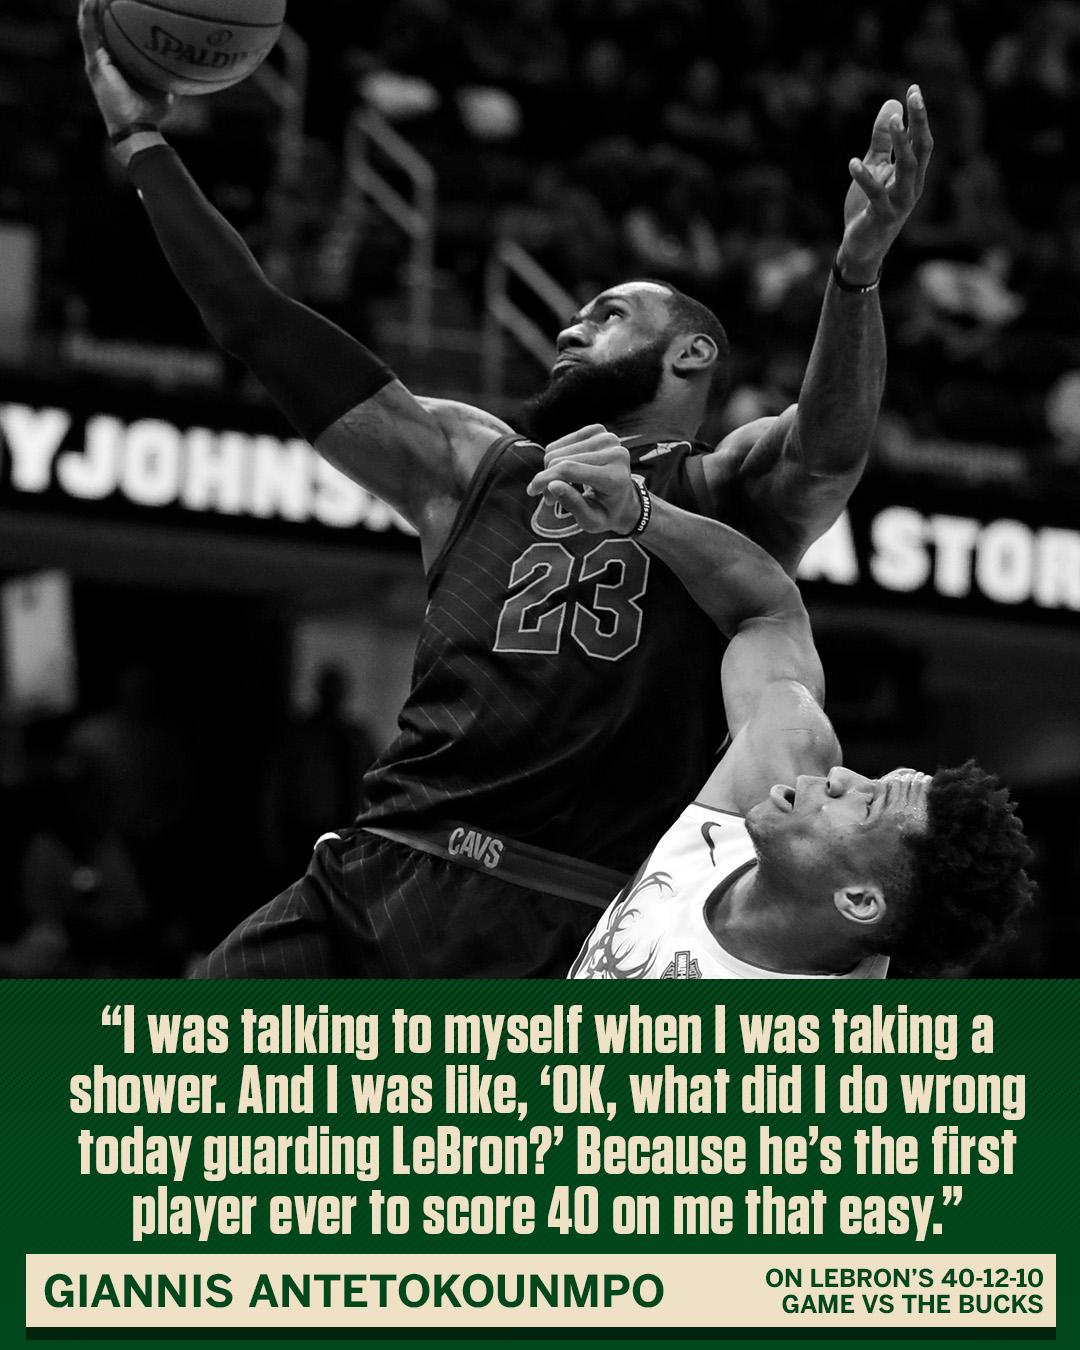 You aren't the first, Giannis. https://t.co/rhosghIrBh